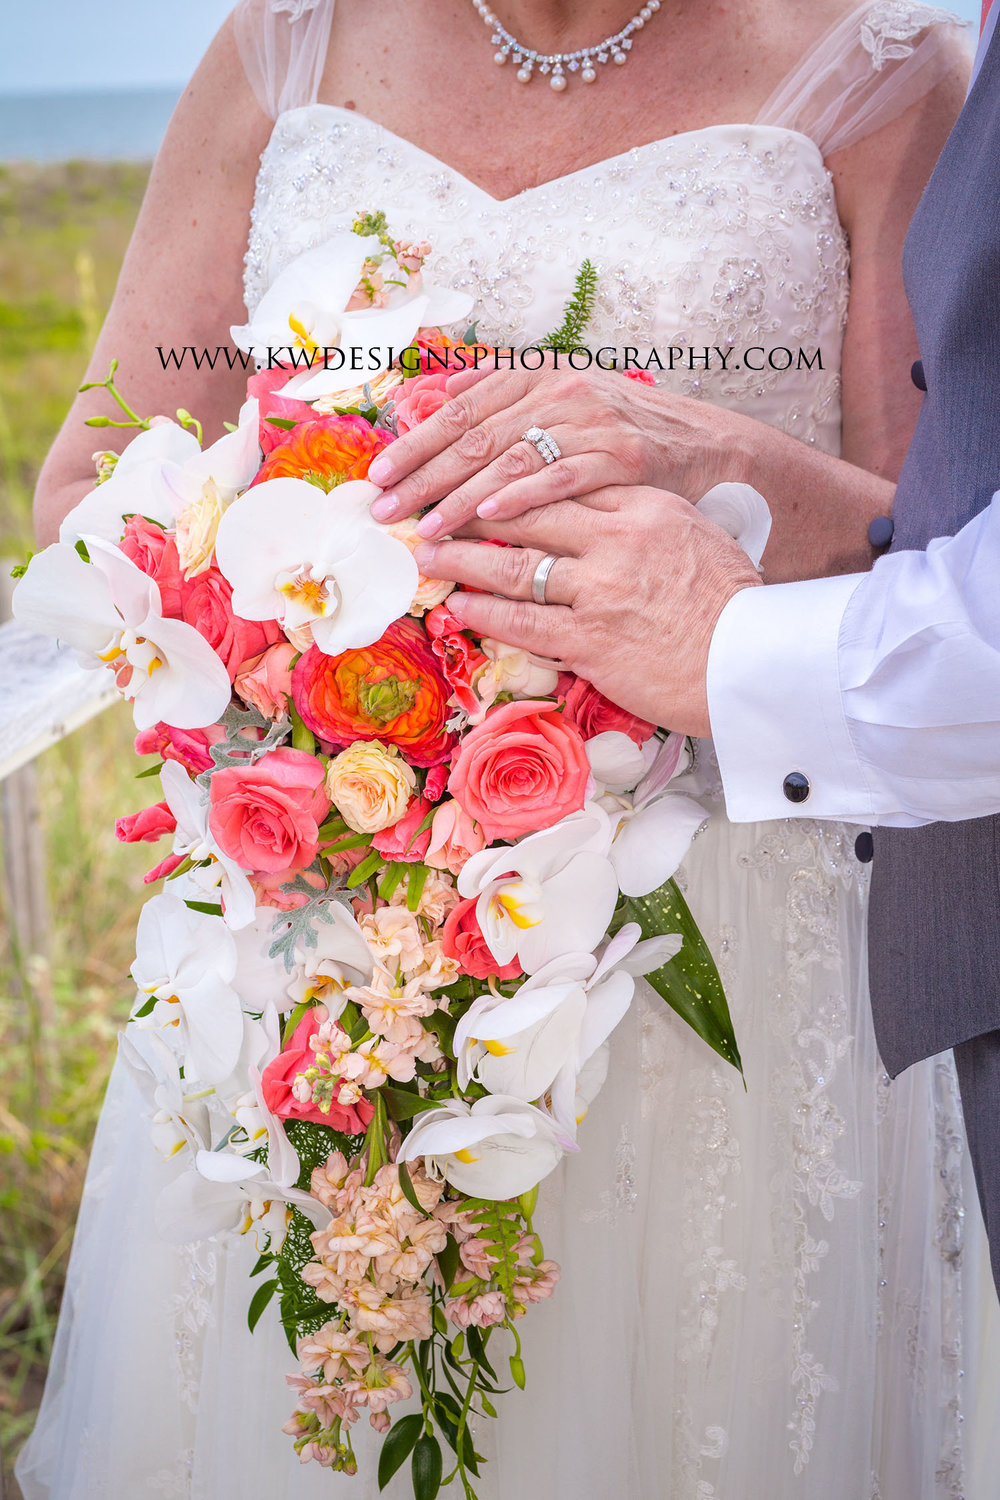 Lakewood Colorado Wedding Photographer - Travel Beach Wedding Photographer